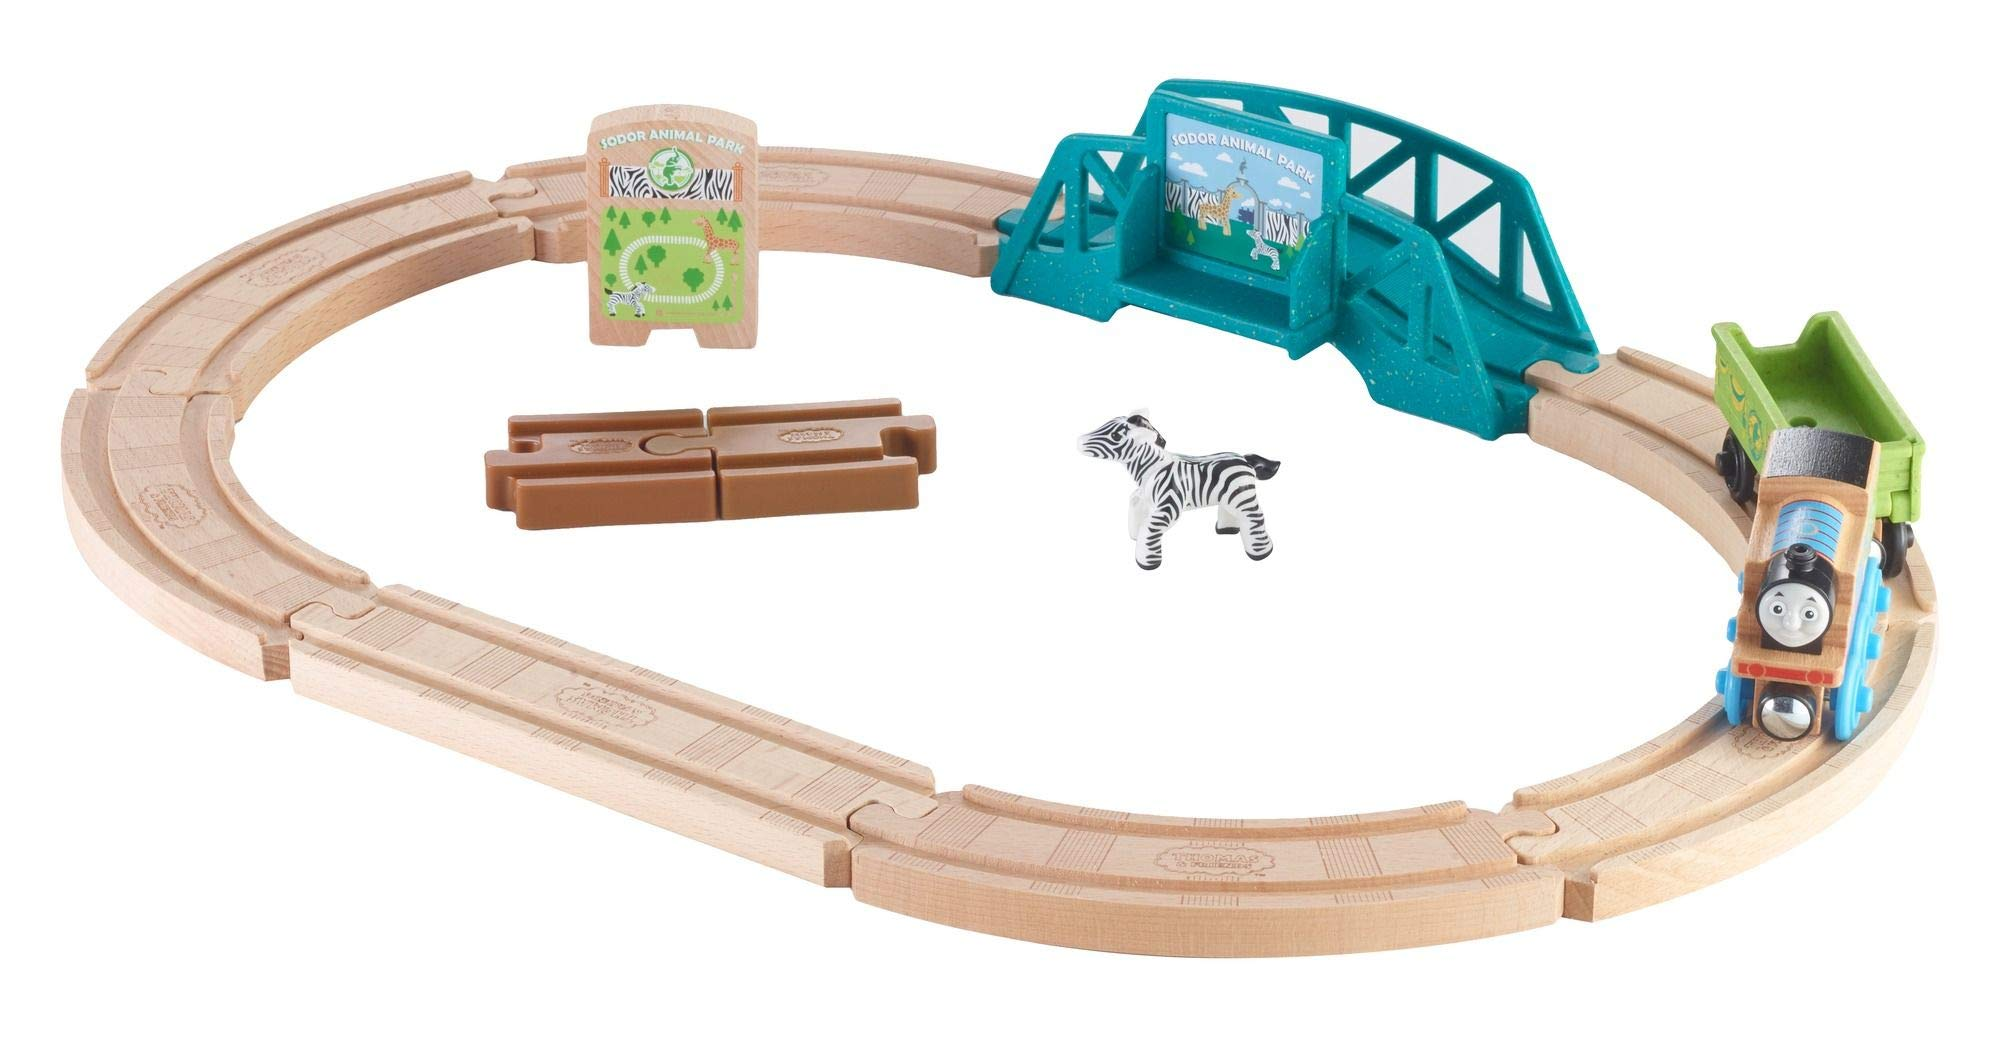 Fisher-Price Thomas & Friends Wood, Animal Park Set